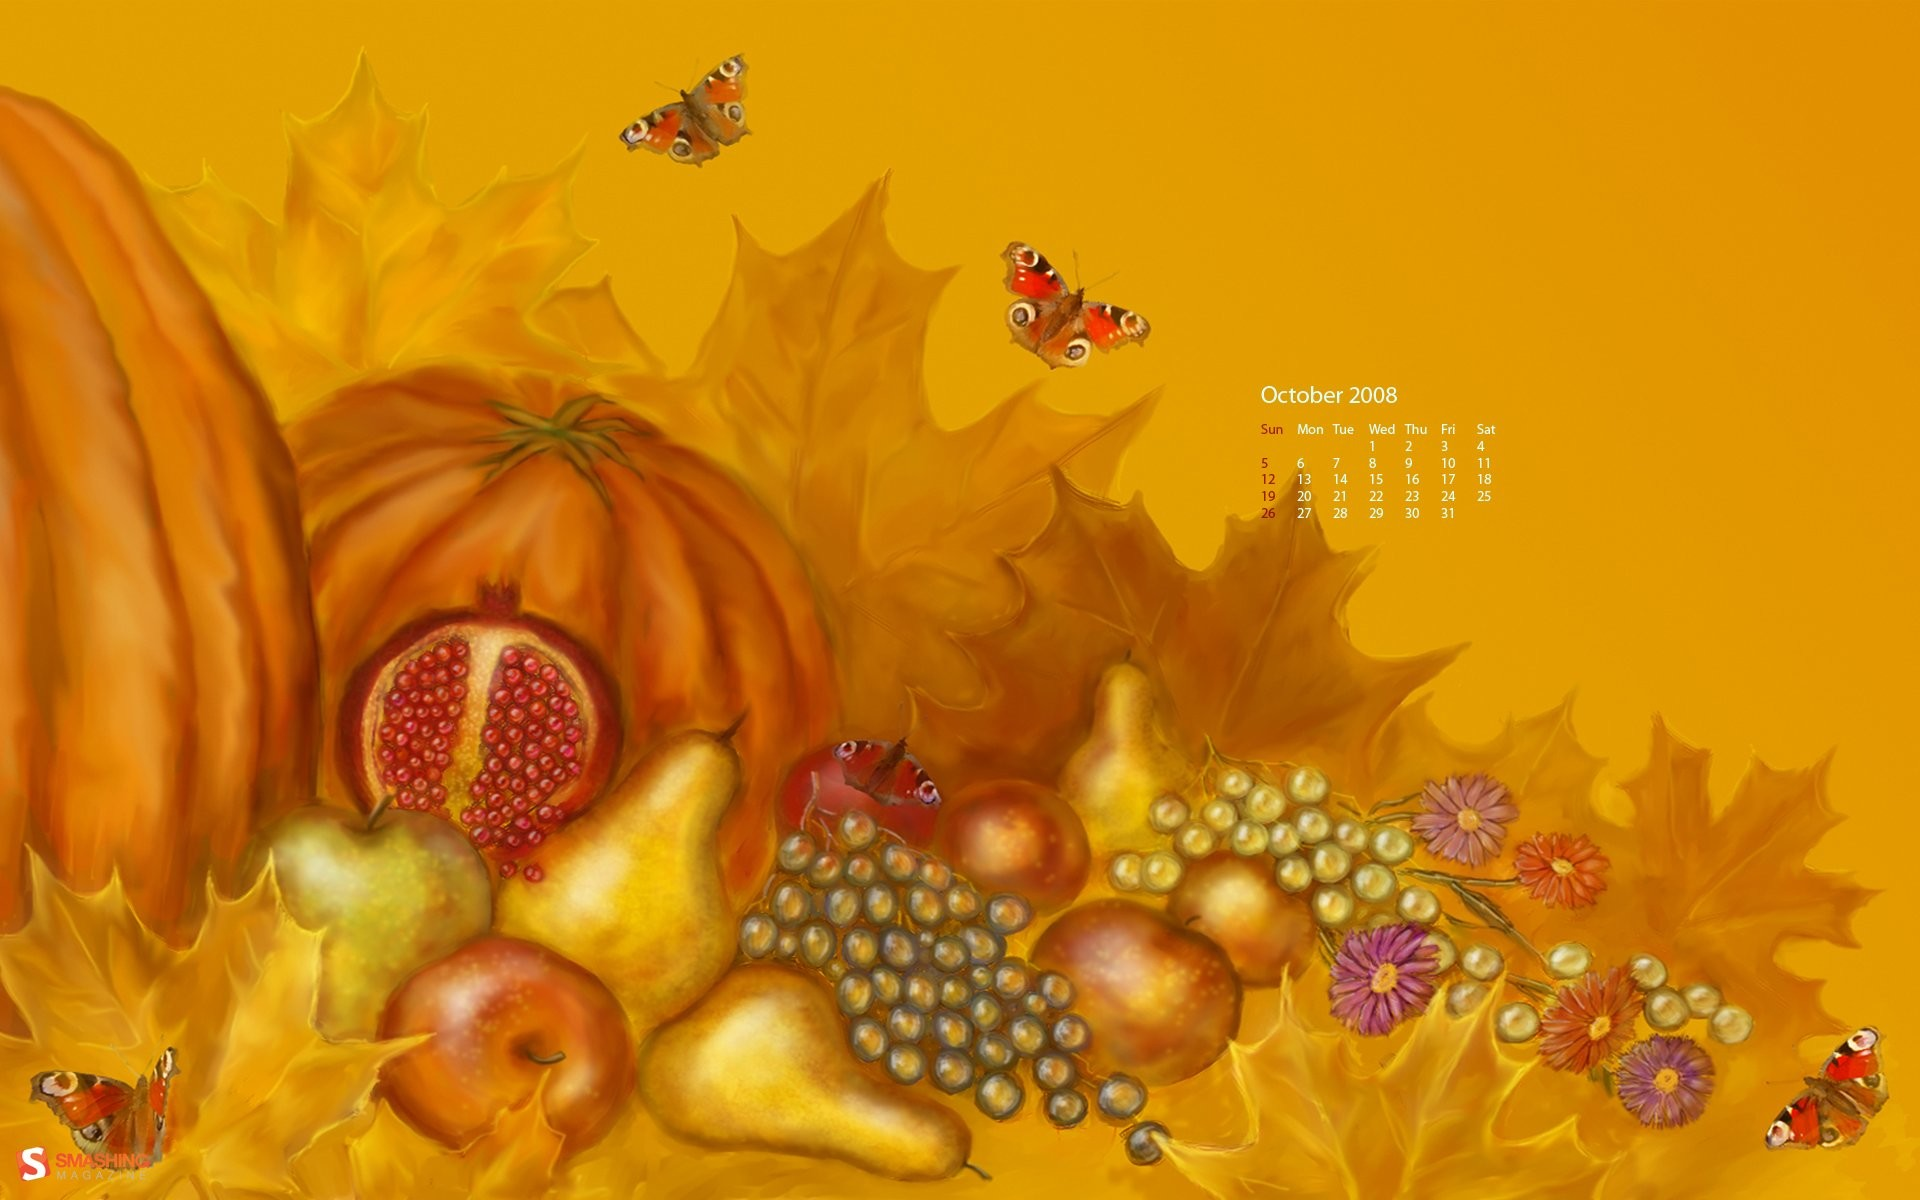 Calendar Live Wallpaper : October wallpaper backgrounds images